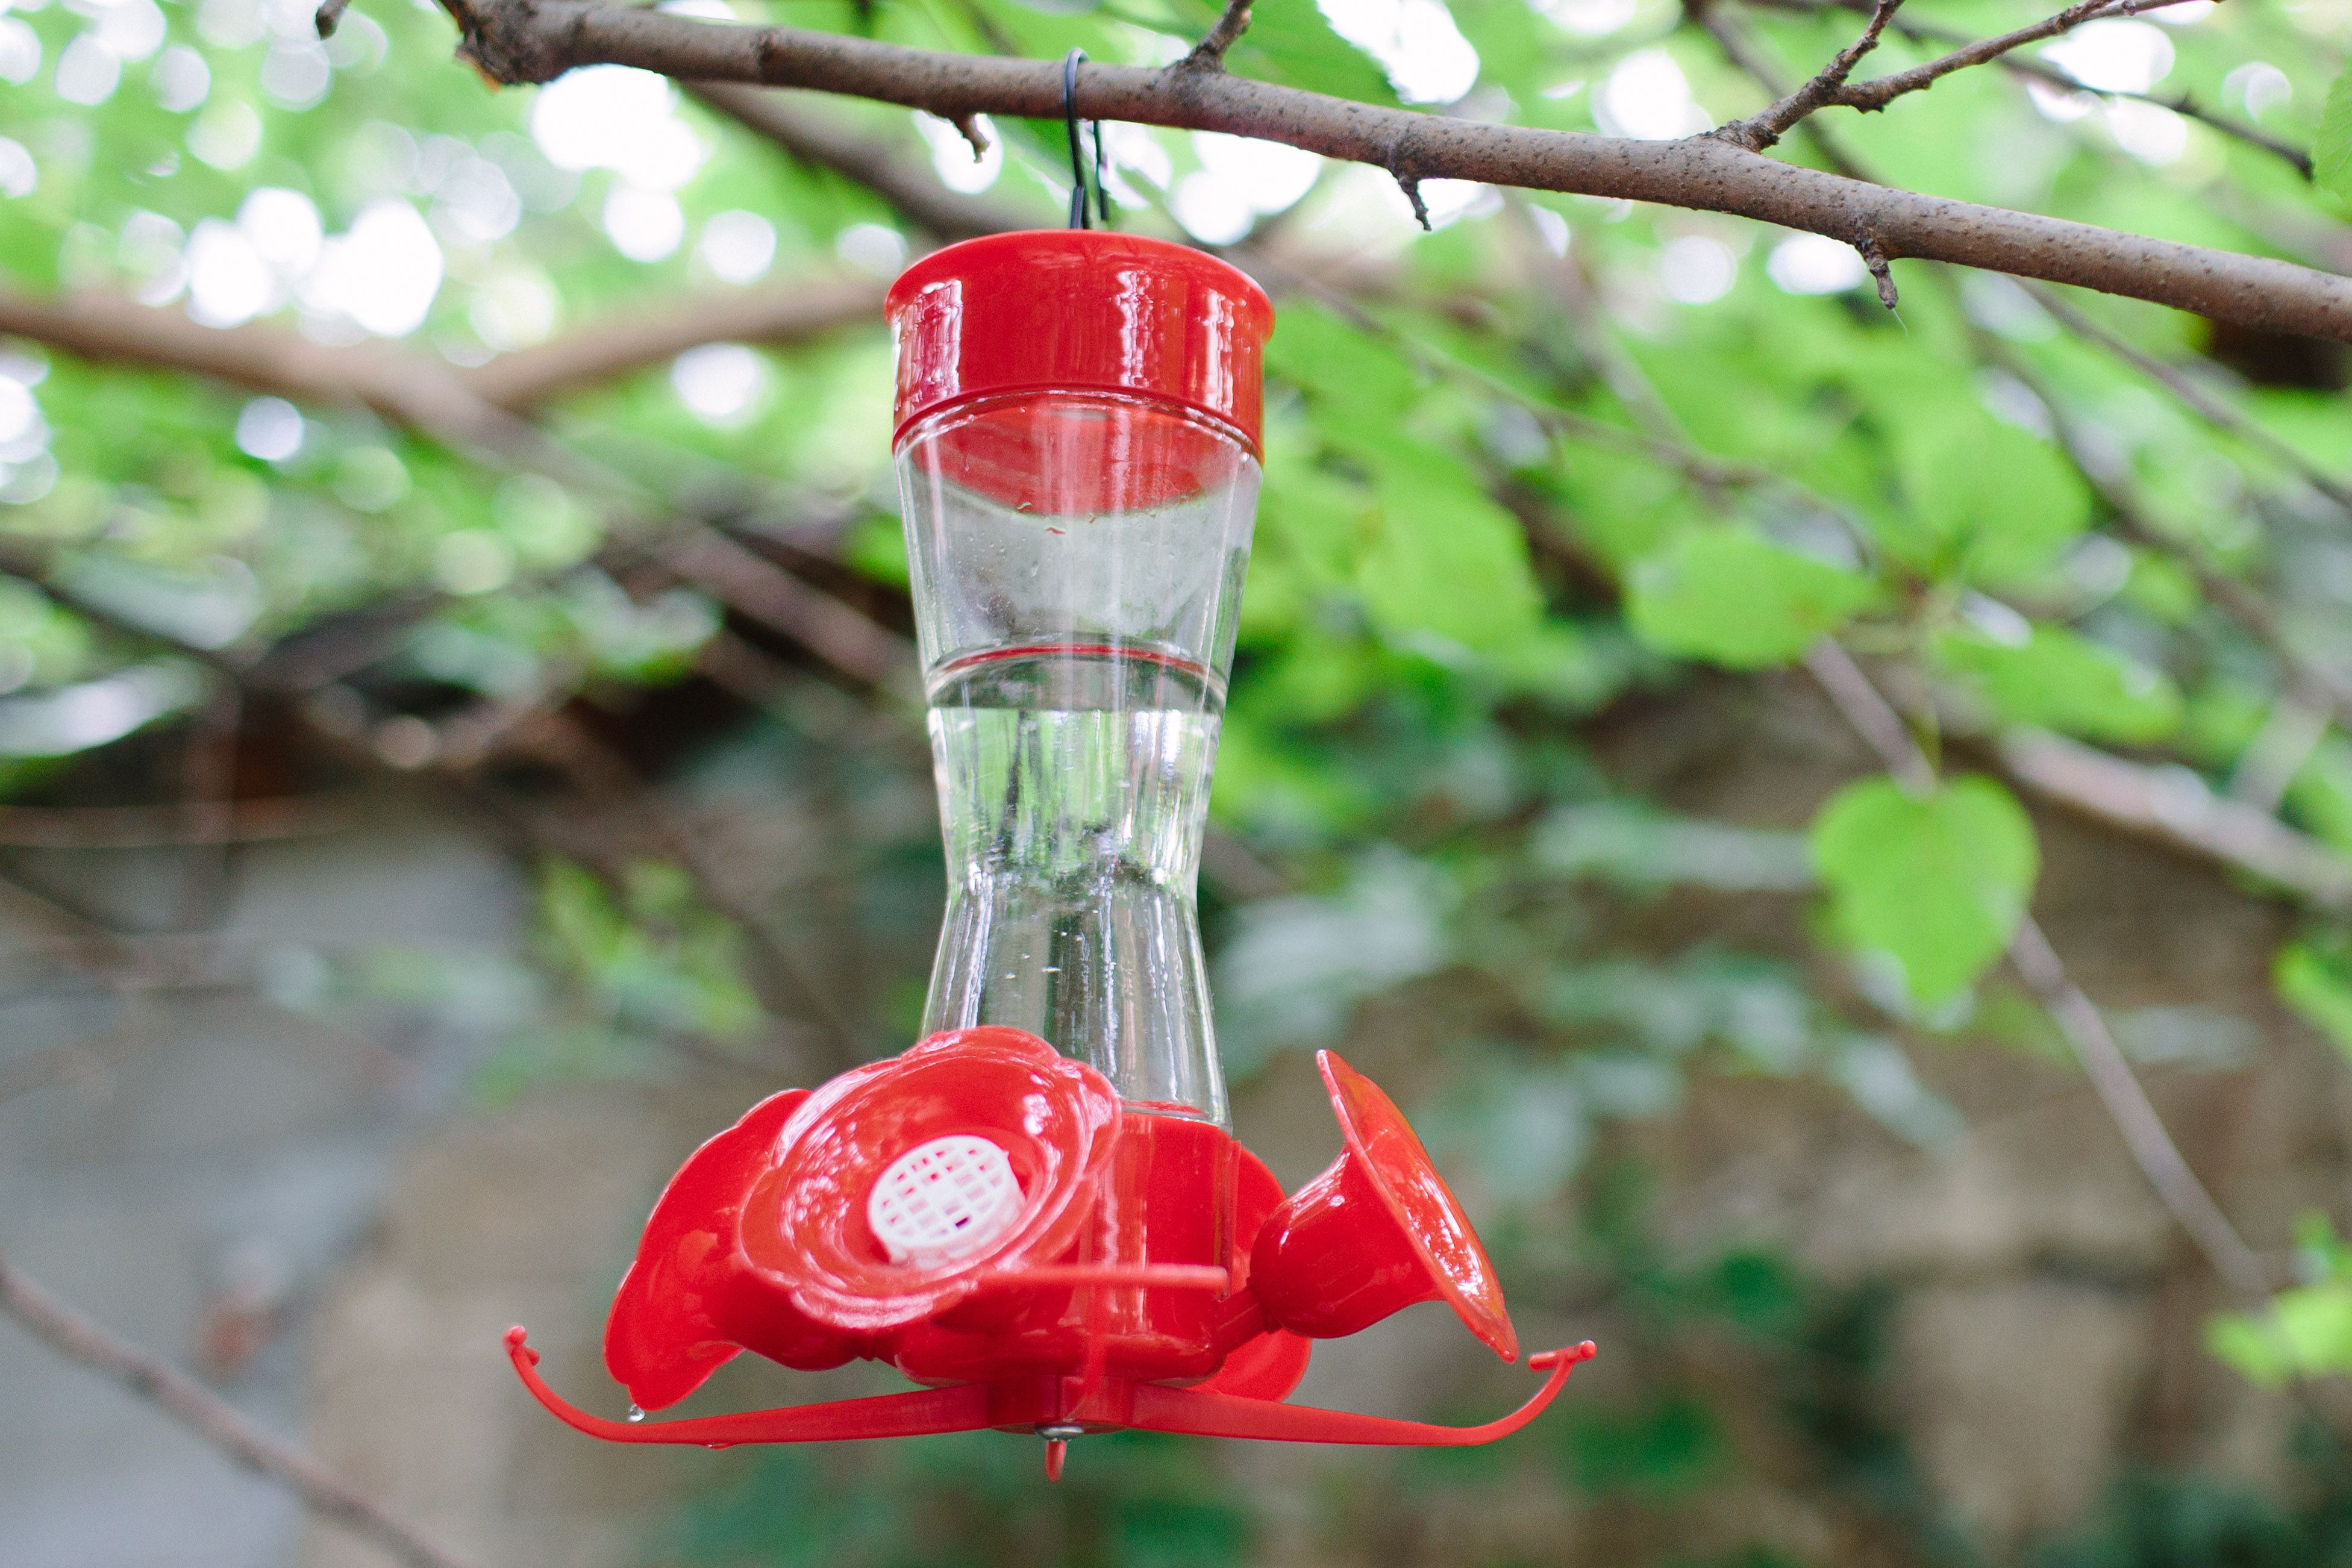 Where To Hang Hummingbirds Feeders,How To Make Sweet Potato Pie From Scratch